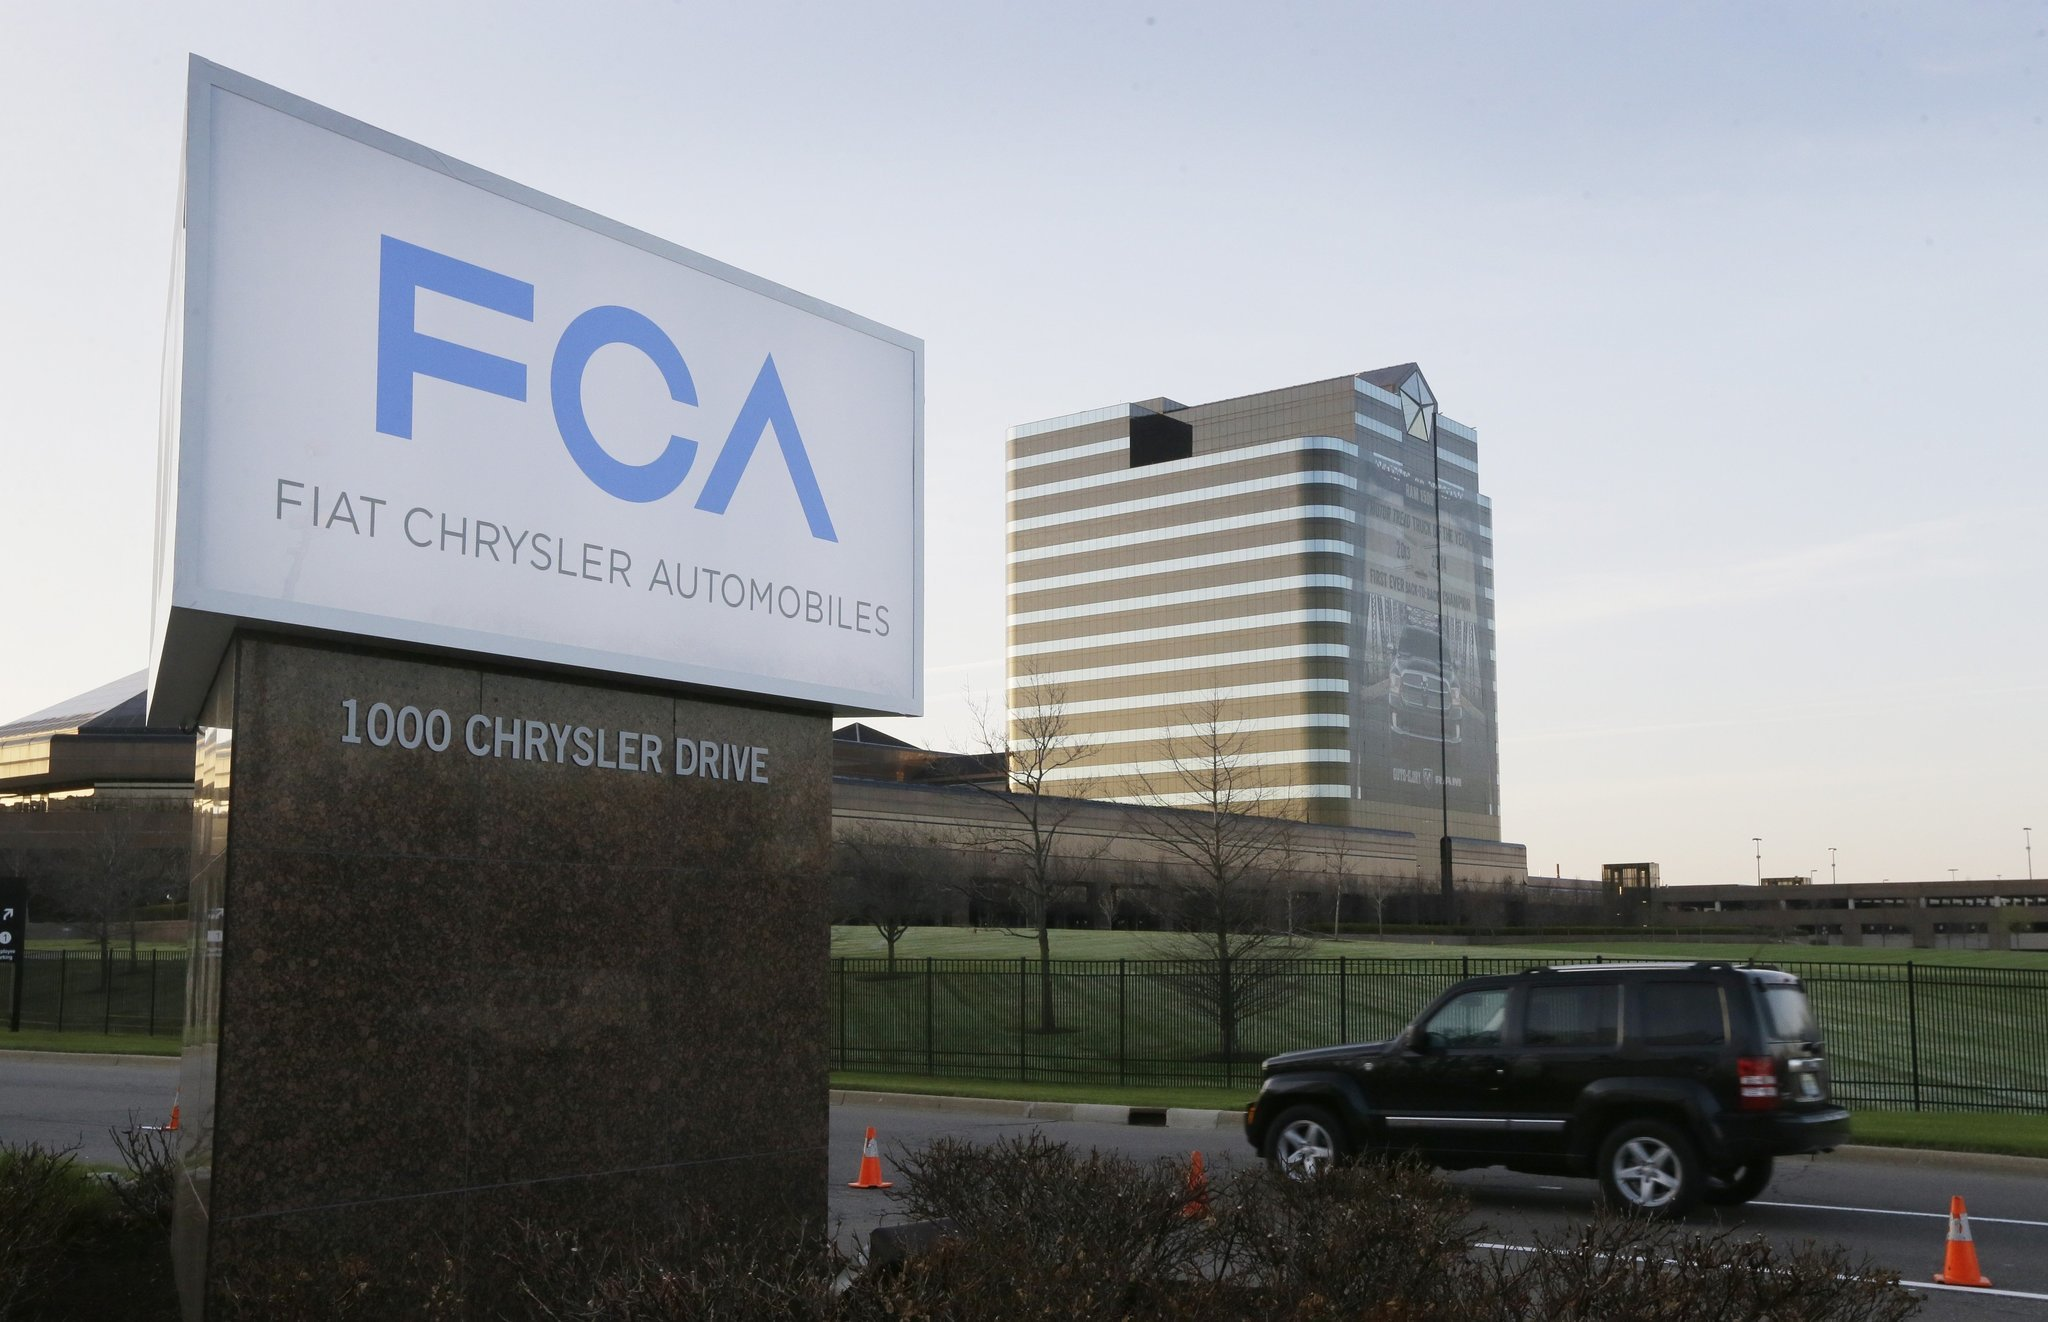 FCA said to be eyeing opening first new assembly plant in Detroit in 27 years